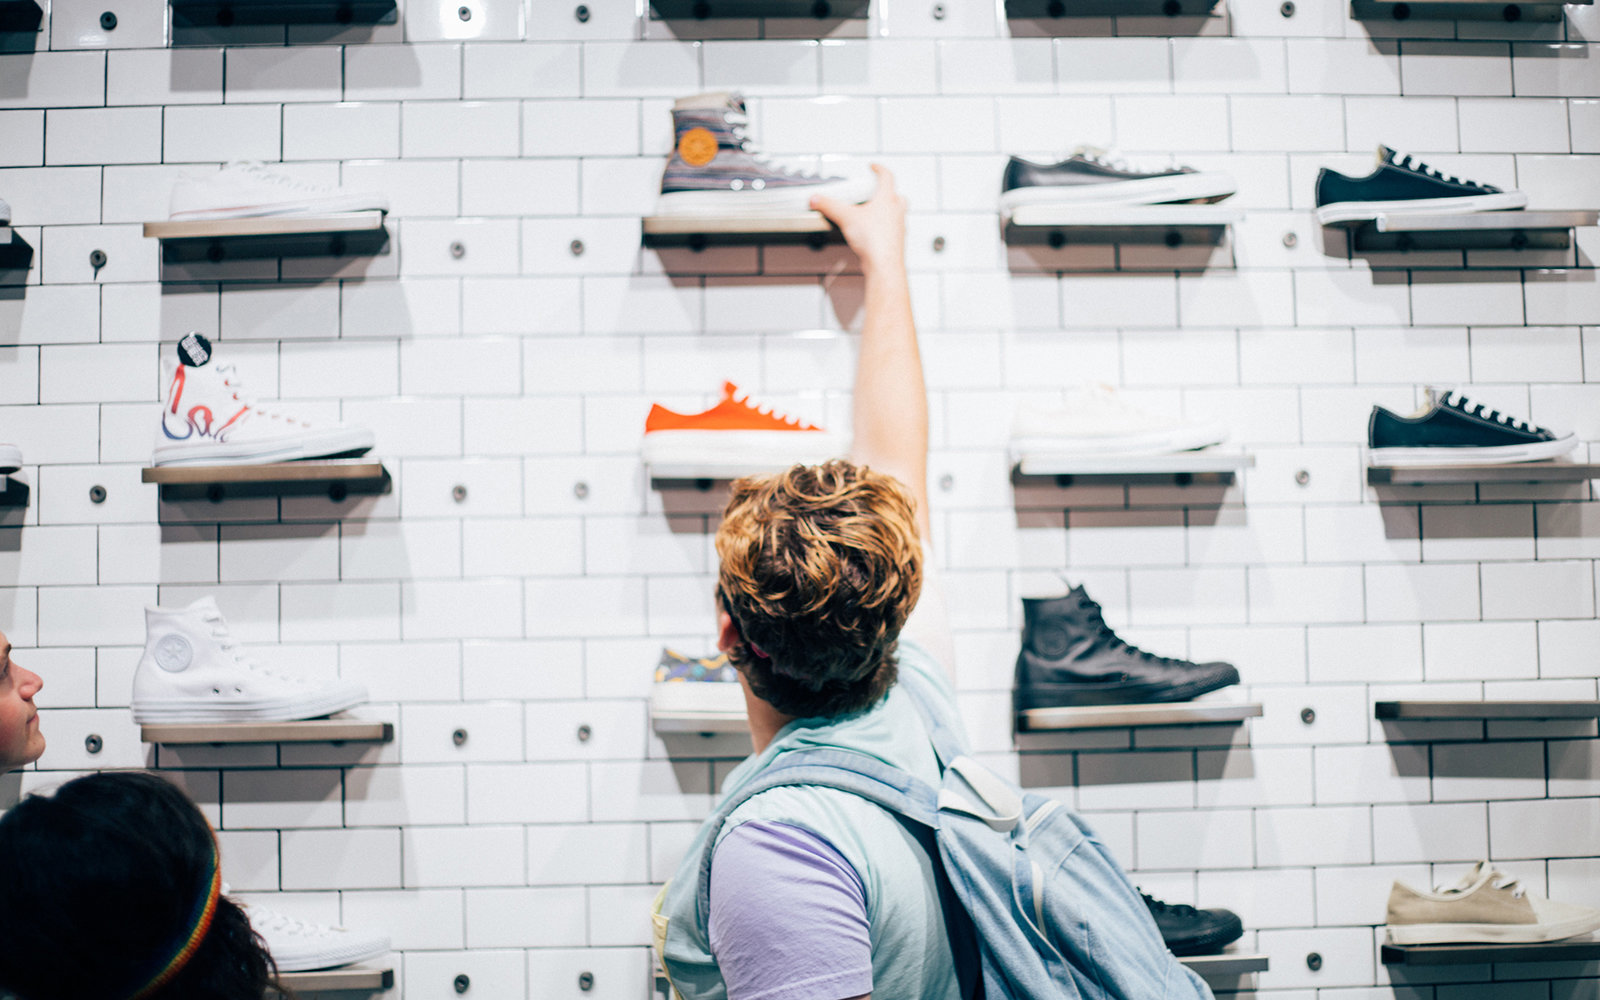 This photograph depicts a New Americana shoestore, a manifestation of today's youth popular culture in the United States, and shows a moment captured of an American teenager reaching up to that ideal of reinvented glamour.